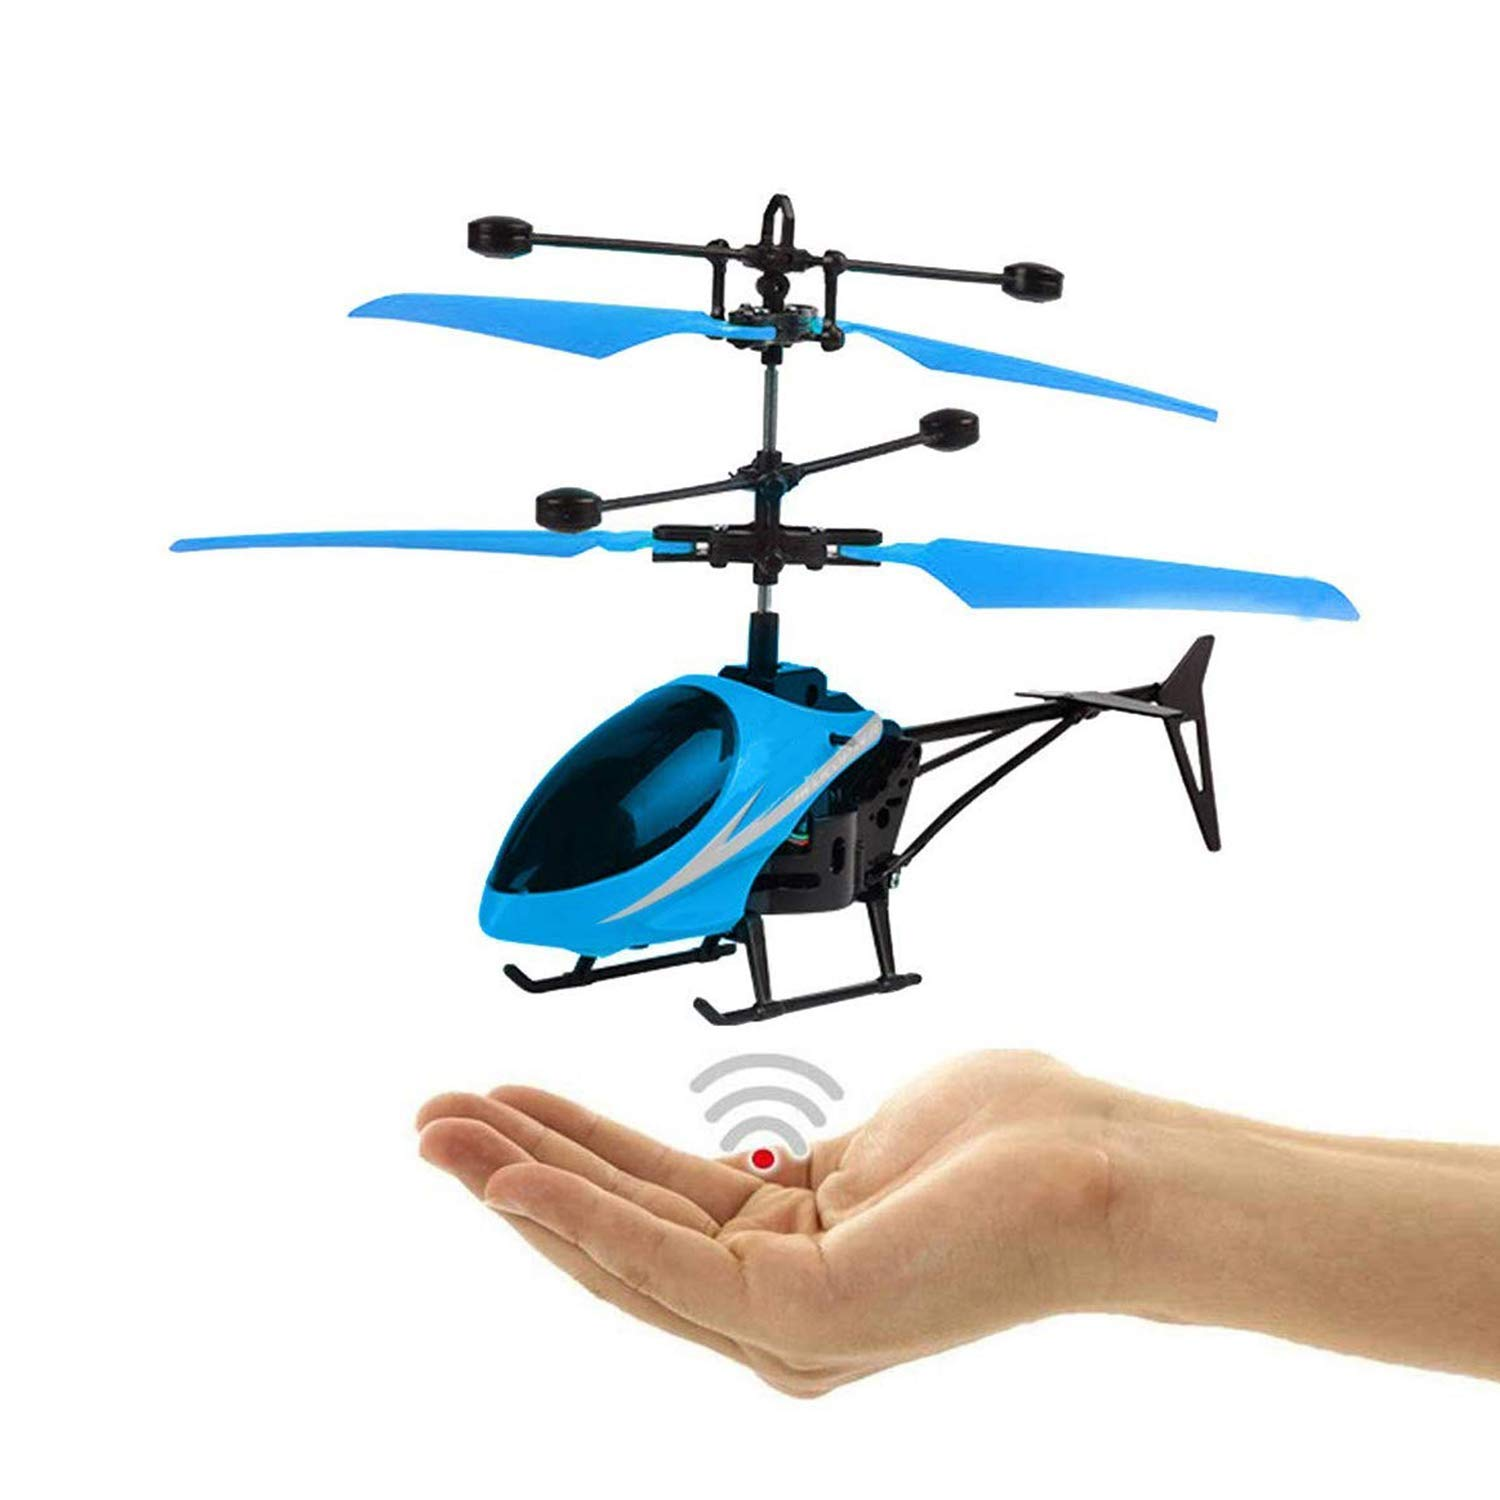 CATQUEENInfraredInductionChargeableElectronicHelicopterSensorAircraftUSBCharger2in1FlyingHelicopter